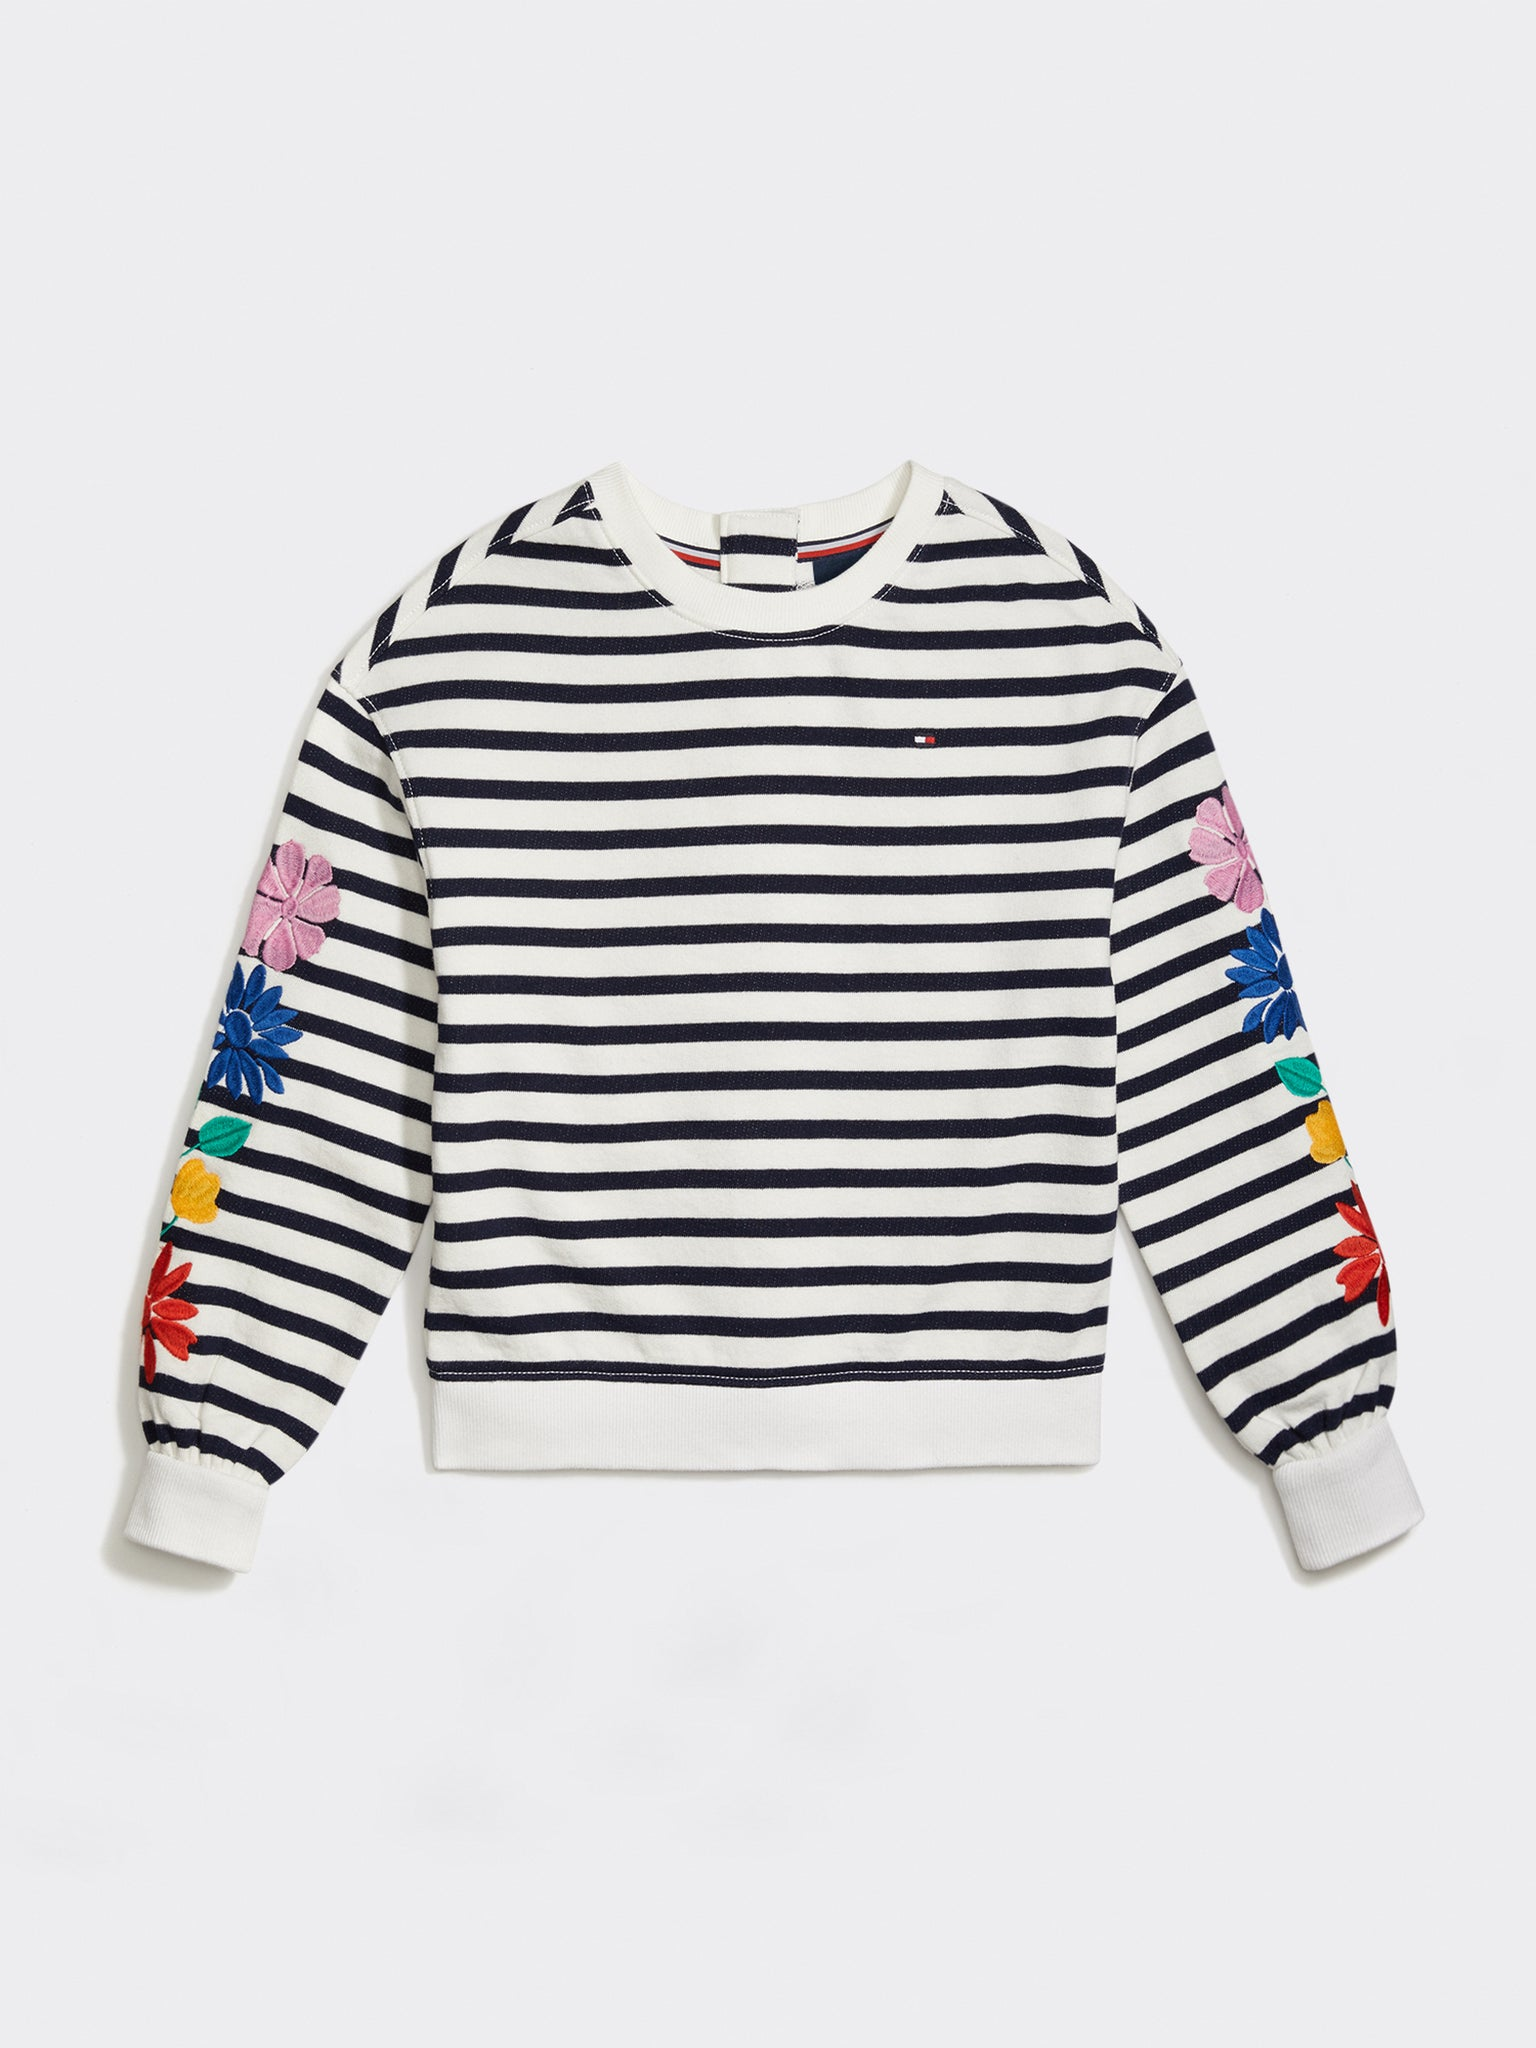 Seated Knit Sweatshirt (Girls) - Striped